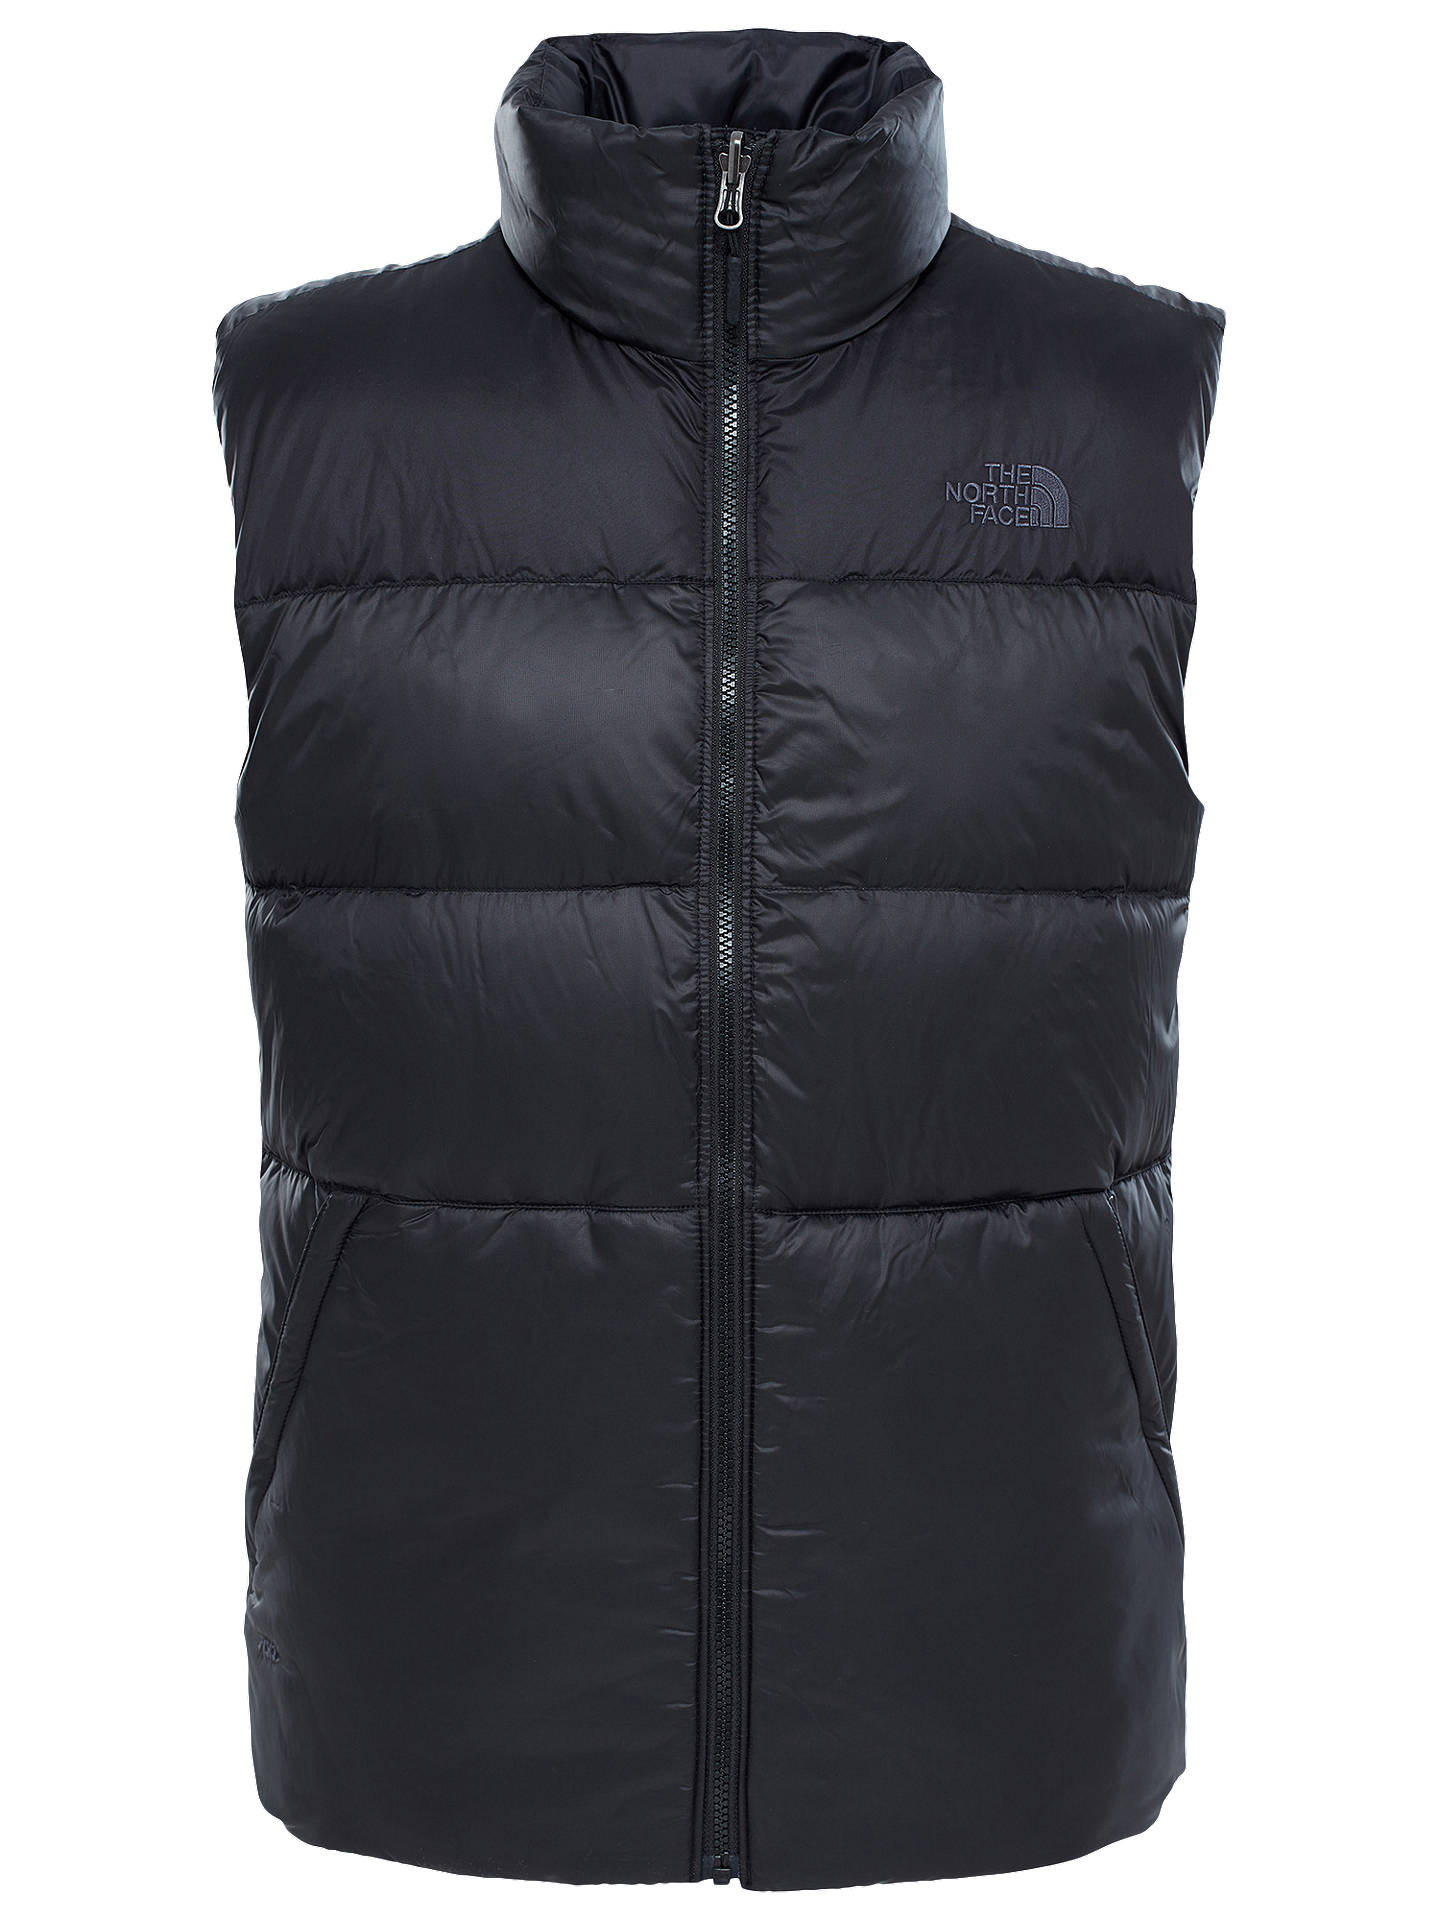 BuyThe North Face Nuptse 3 Men s Vest 3a48a2847